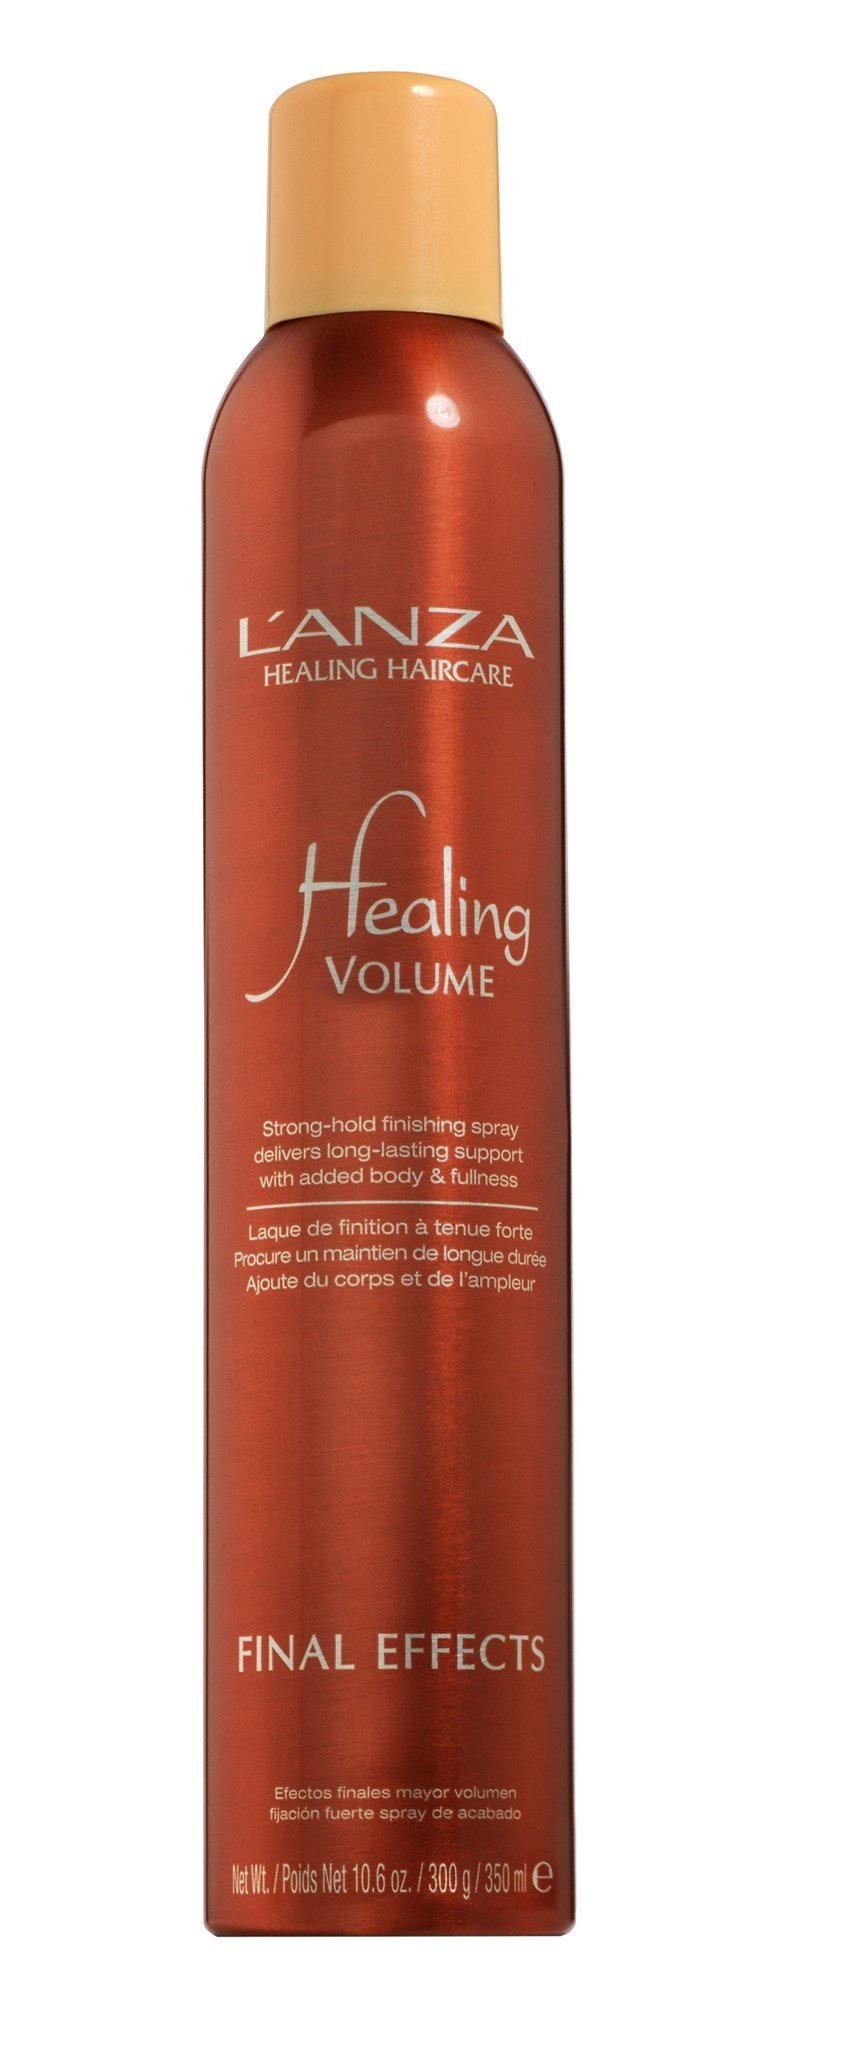 350ml Lanza Healing Volume Final Effects